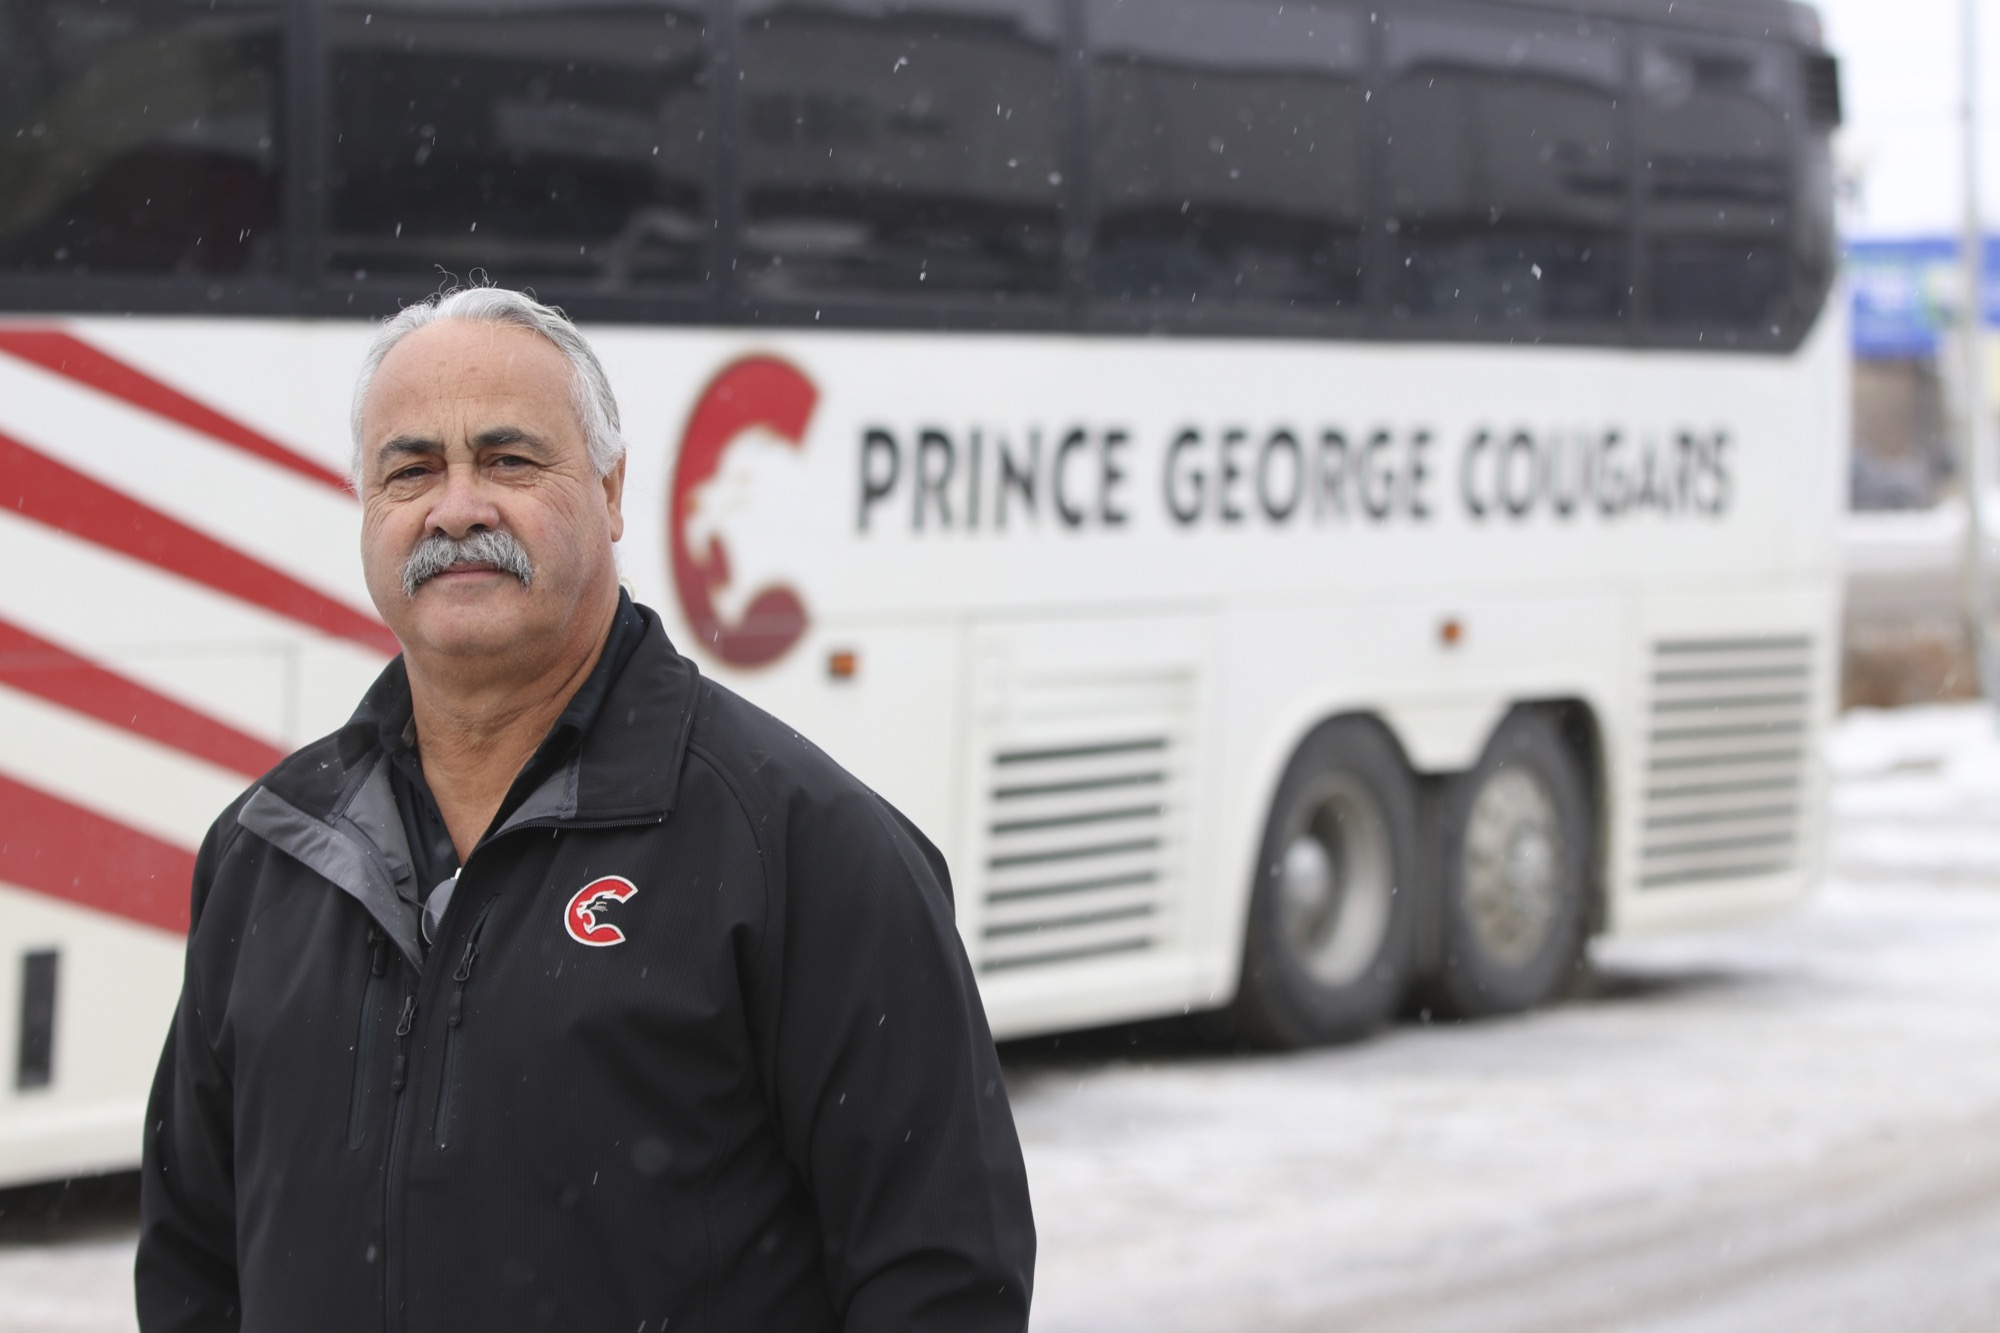 Ralph Posteraro, who drives the bus for the Prince George Cougars, played a little known but important role for the Brandon Wheat Kings in the Western Hockey League final during the 2015-16 season.